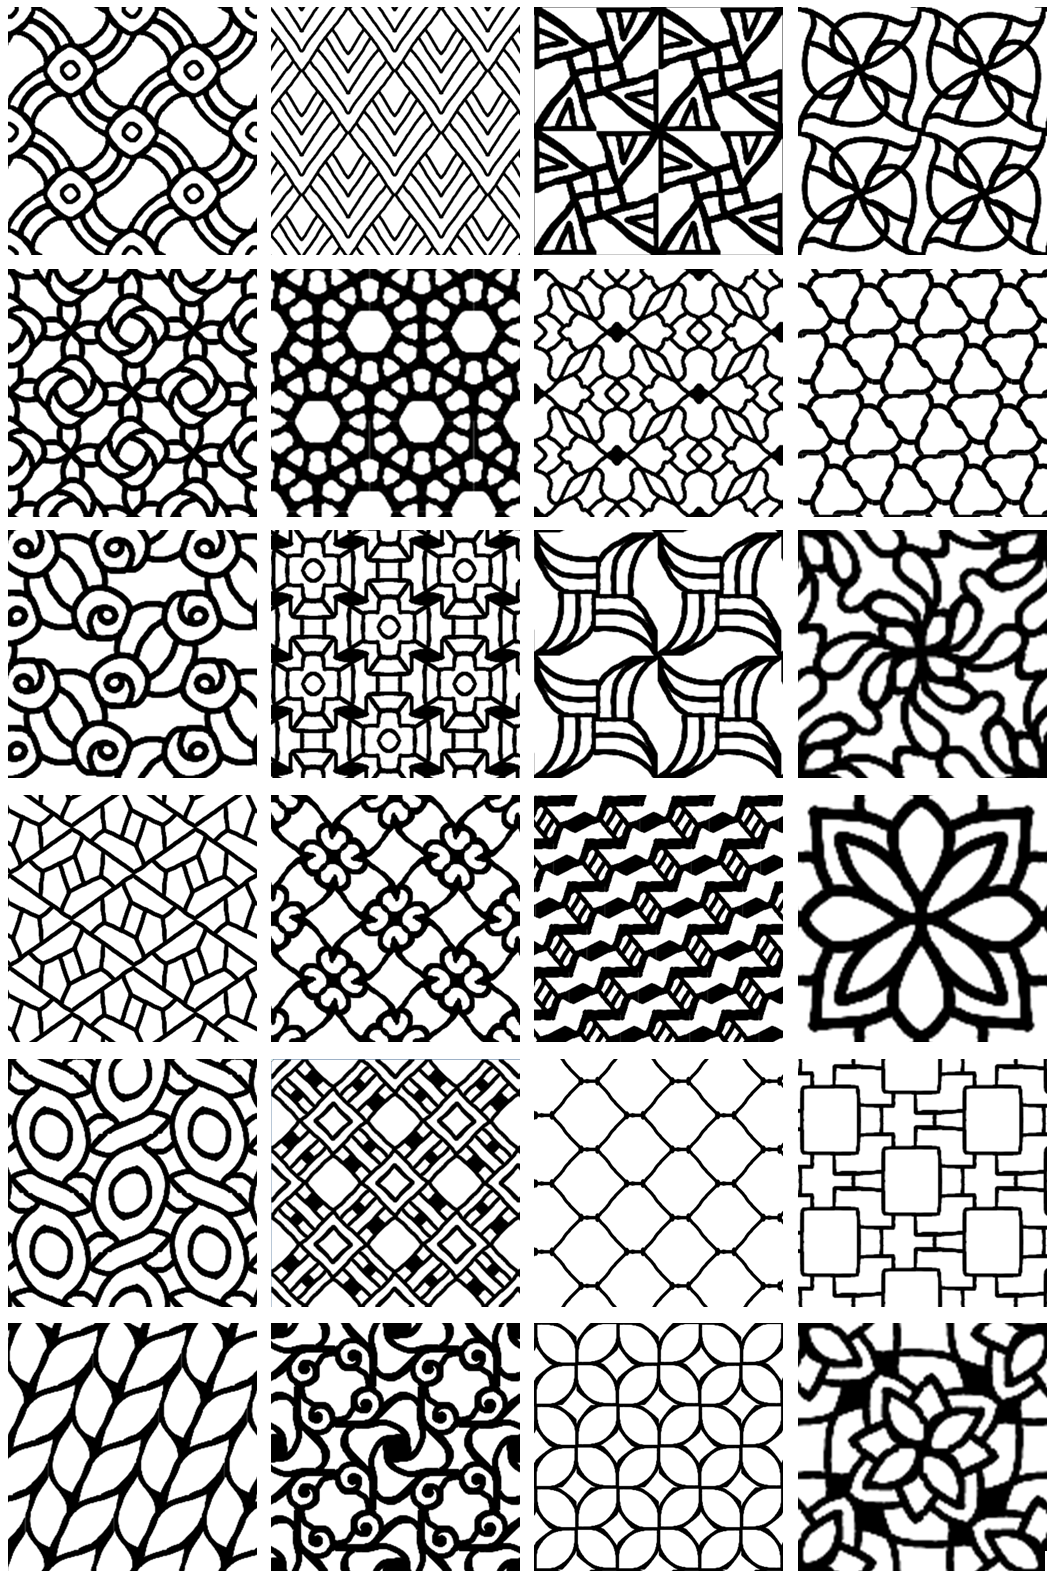 Inspired By Zentangle Patterns And Starter 7